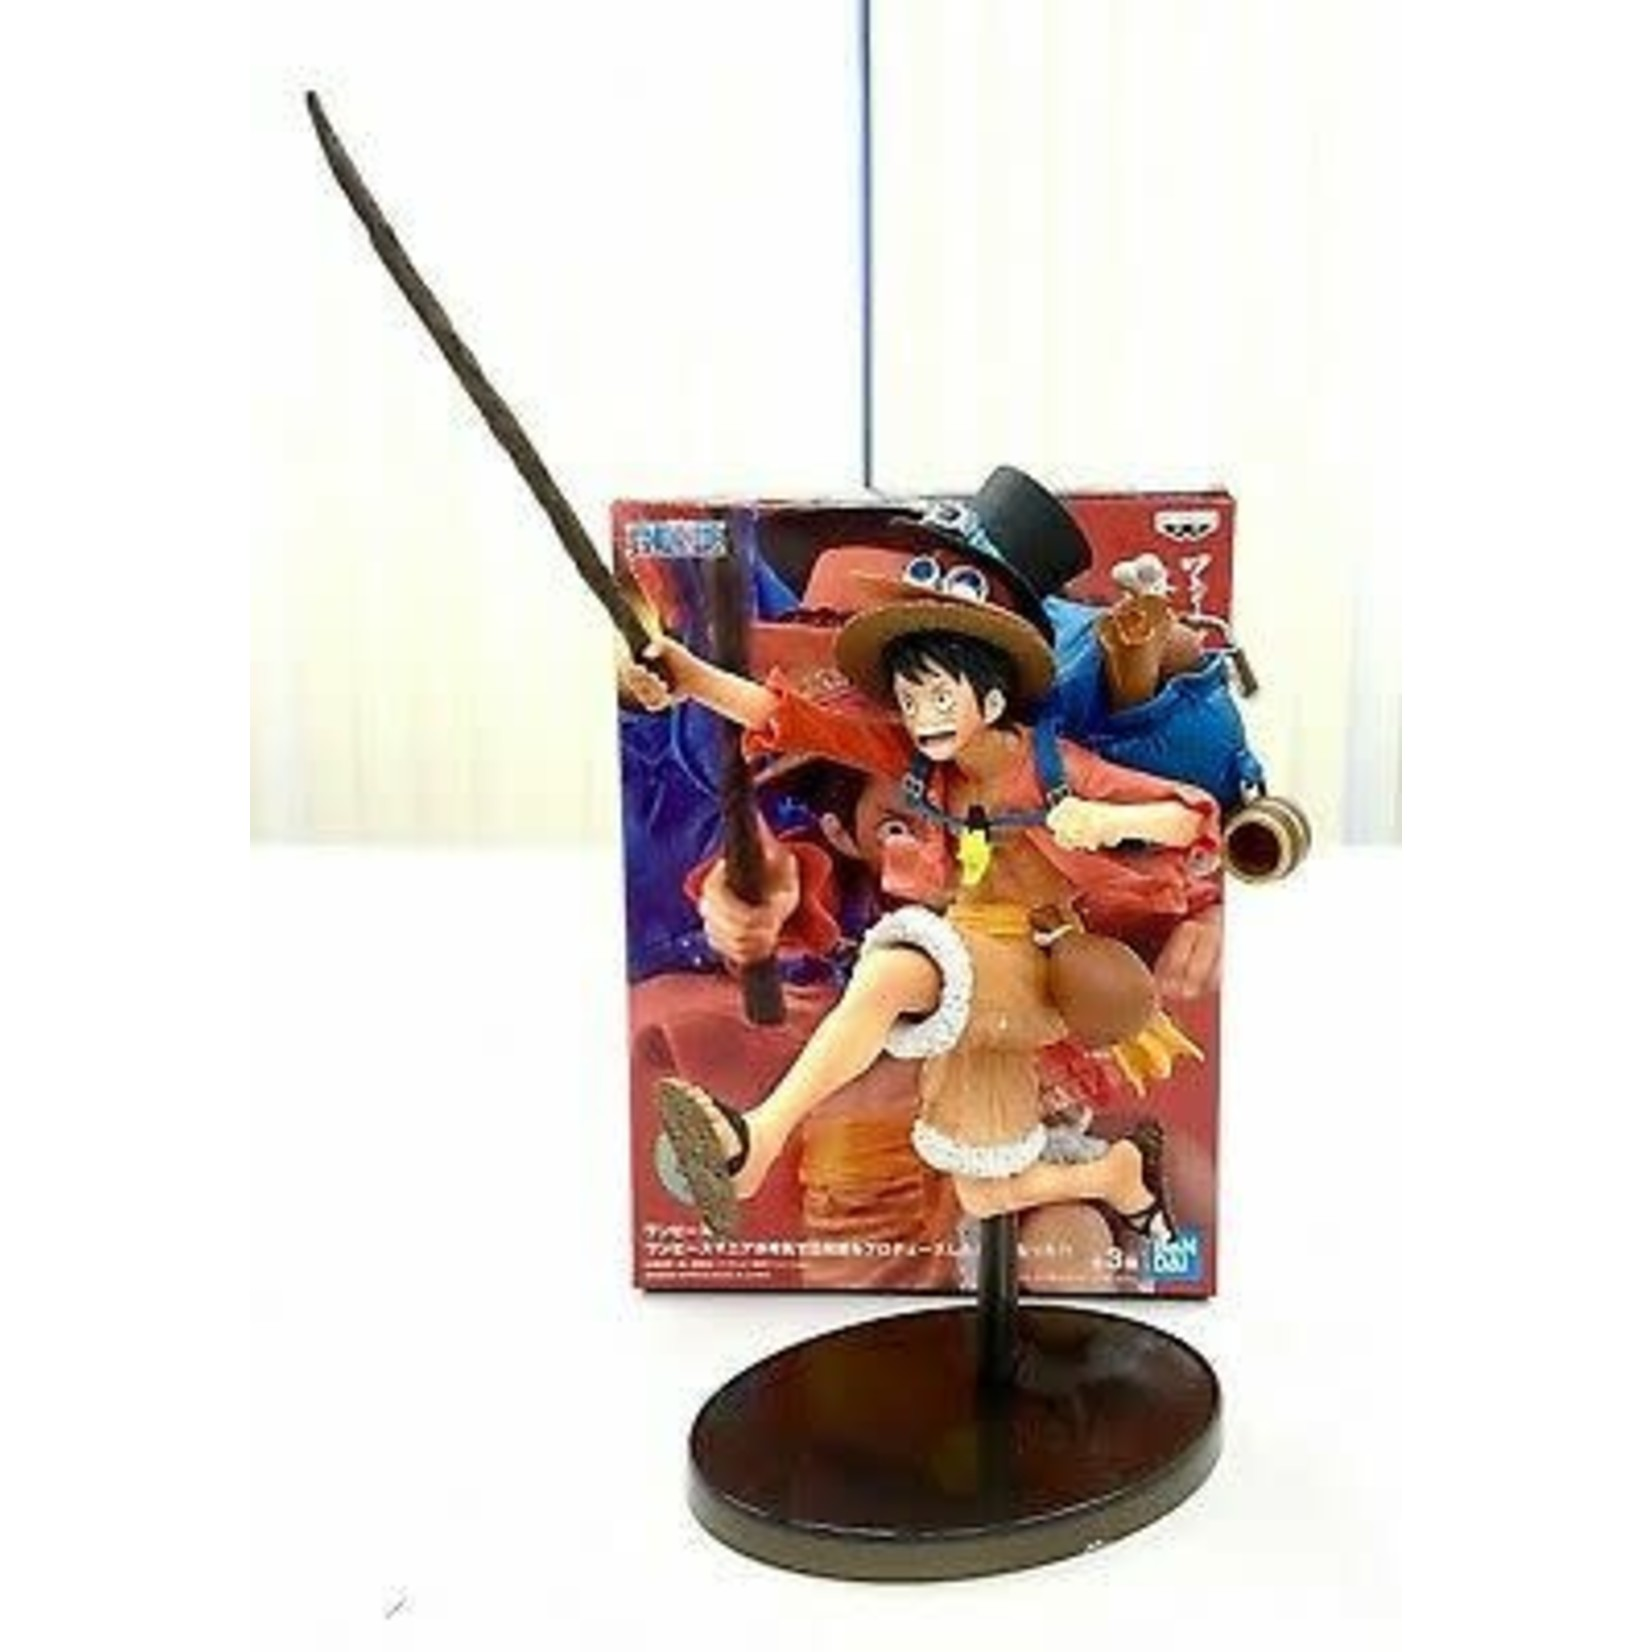 FIGURE-One Piece 3 Brothers Monkey D Luffy